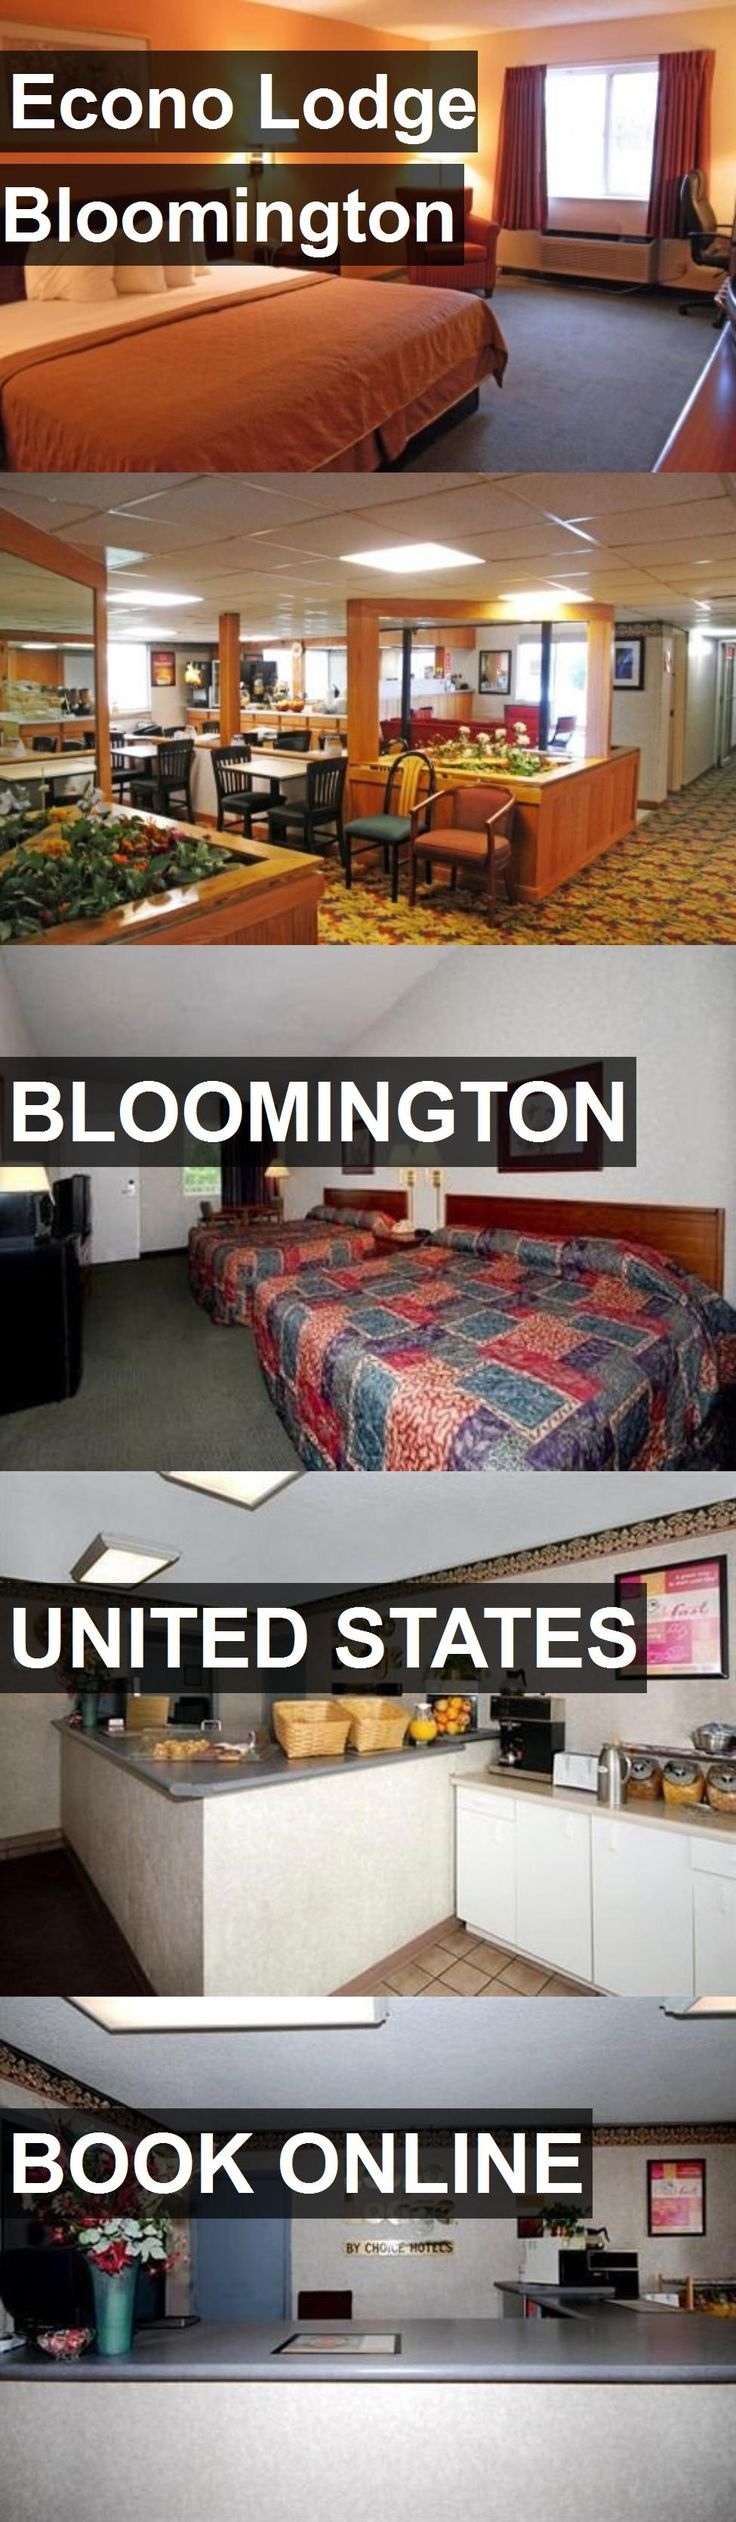 Hotel Econo Lodge Bloomington in Bloomington, United States. For more information, photos, reviews and best prices please follow the link. #UnitedStates #Bloomington #travel #vacation #hotel